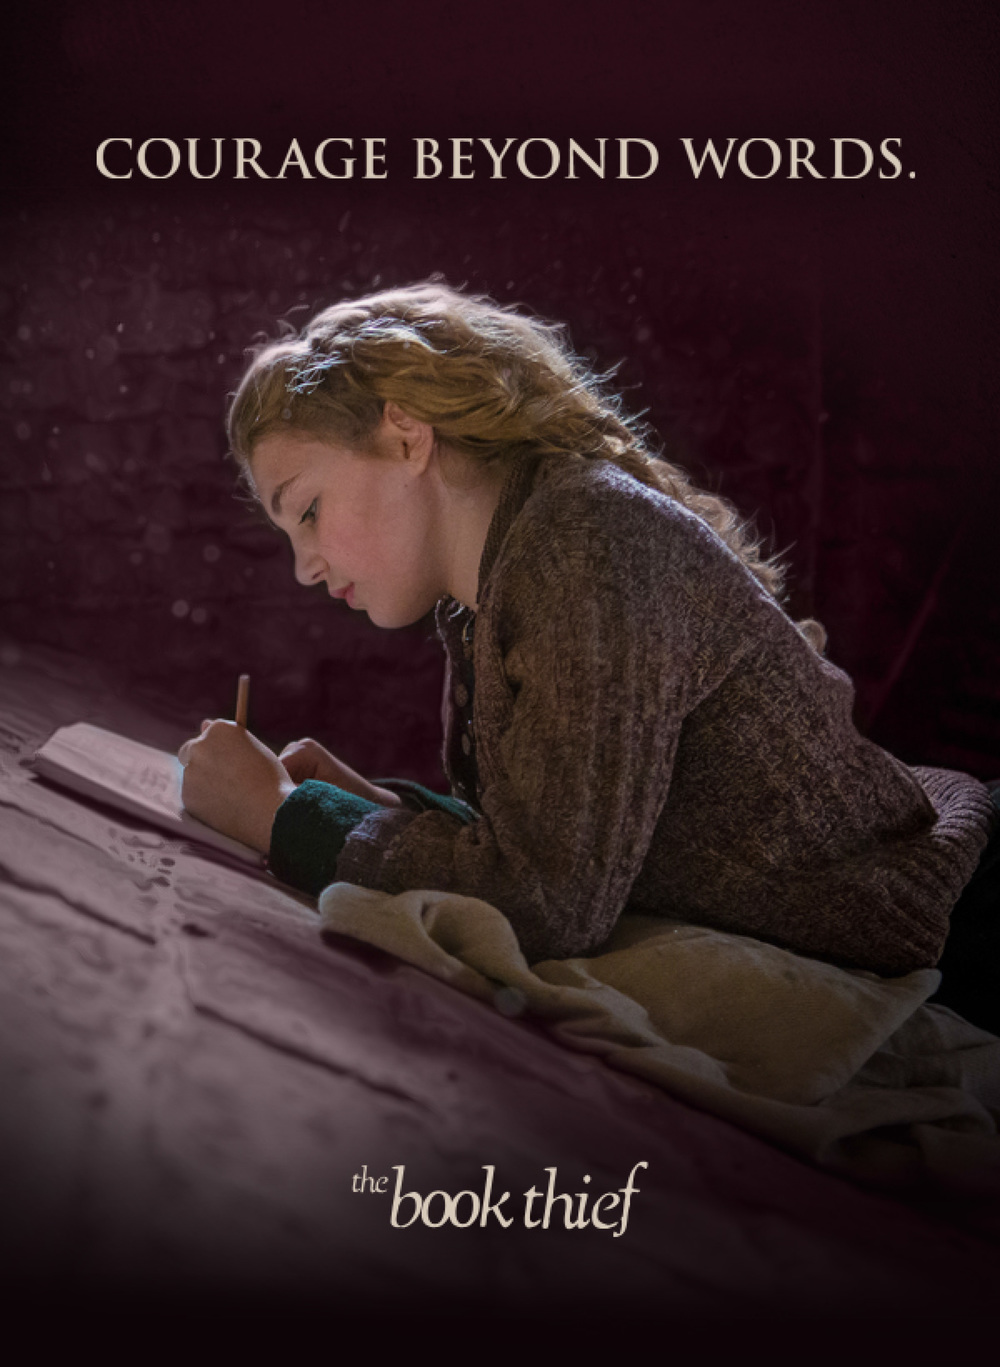 the book theif reading response The book thief, as the title suggests, is all about books, and more specifically, words their influence and power the reference to literary texts within the novel plays a key part in this major theme.